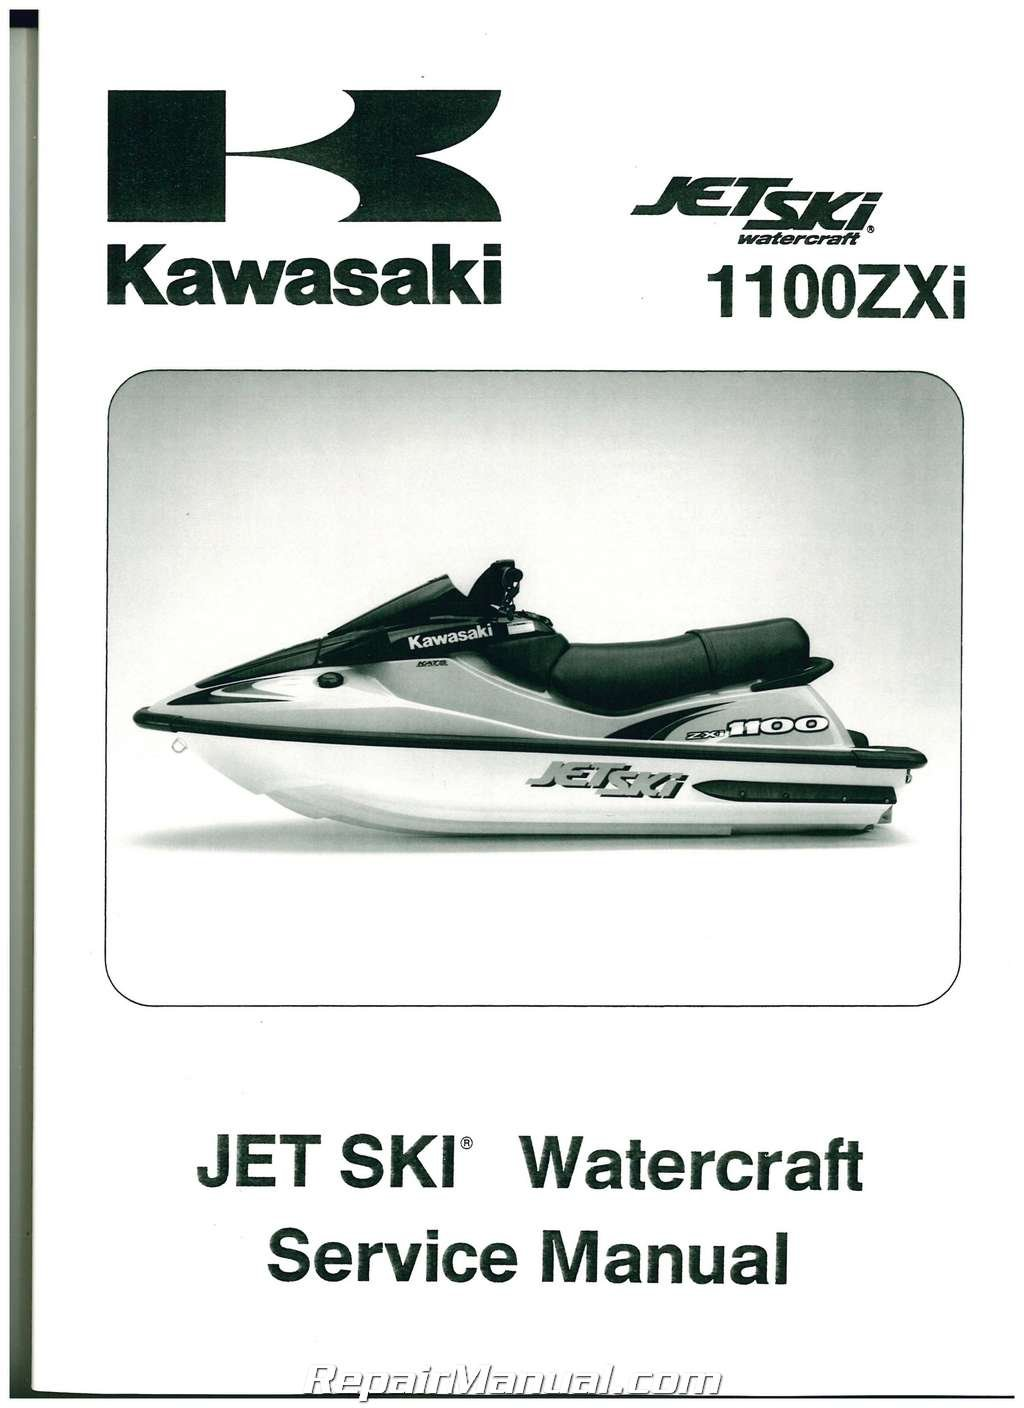 99924-1195-04 1996-2002 Kawasaki 1100 ZXi 1999 1100 STX Jet Ski Factory  Service Manual: Manufacturer: Amazon.com: Books